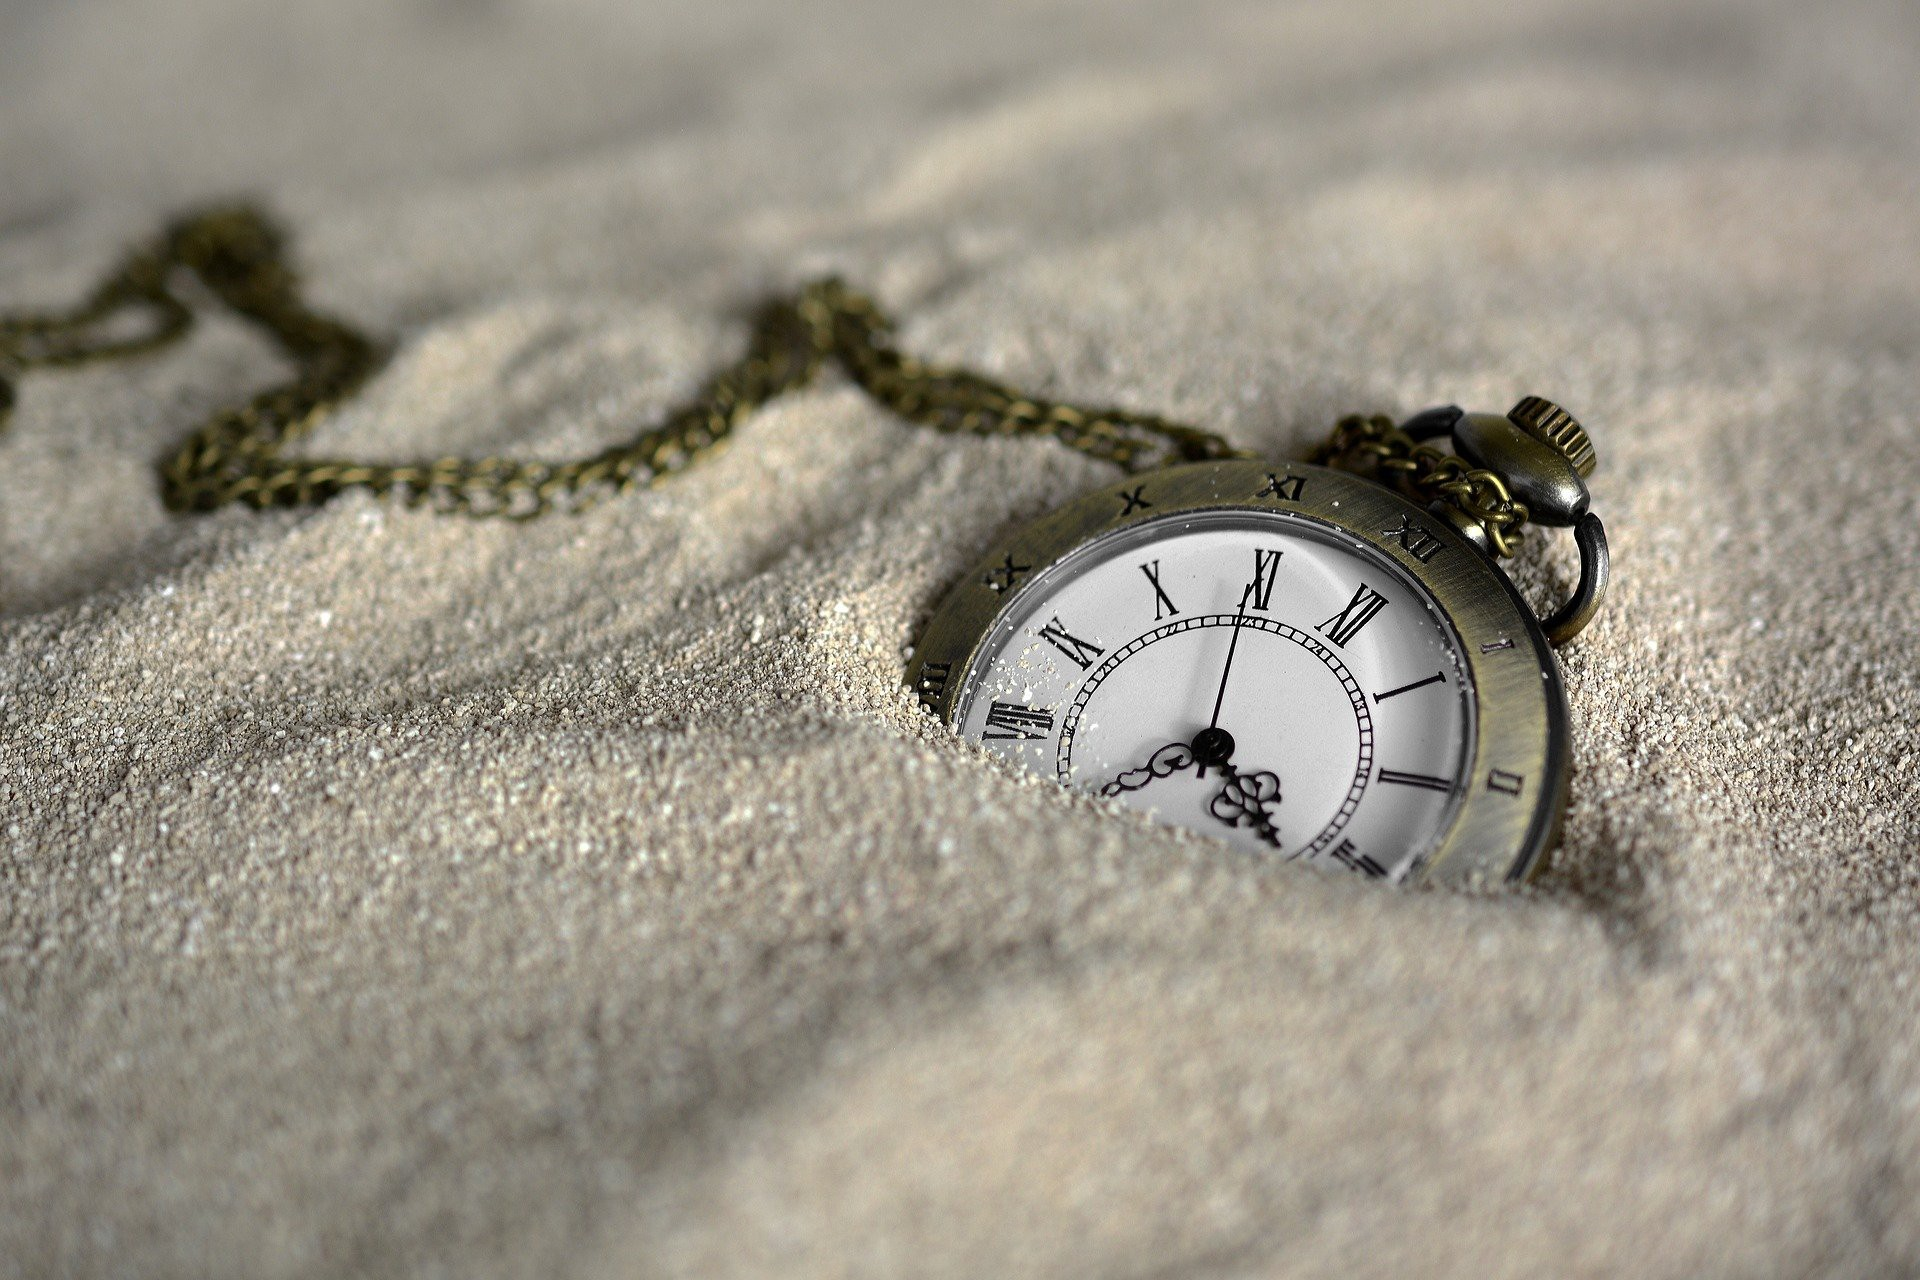 Old fashioned watch in sand